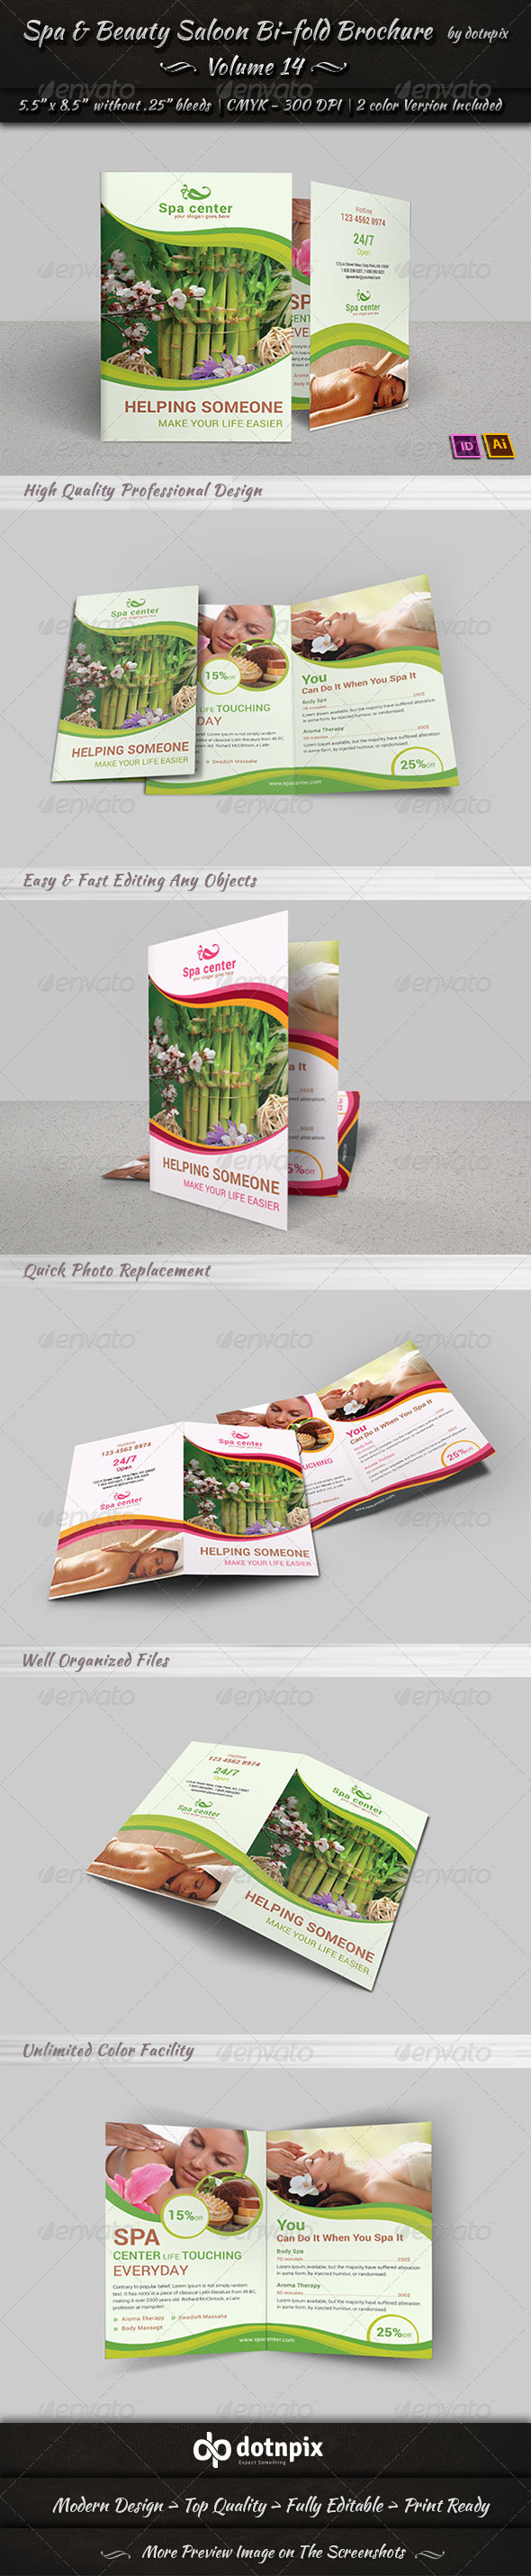 Spa & Beauty Saloon Bi-Fold Brochure Volume 14